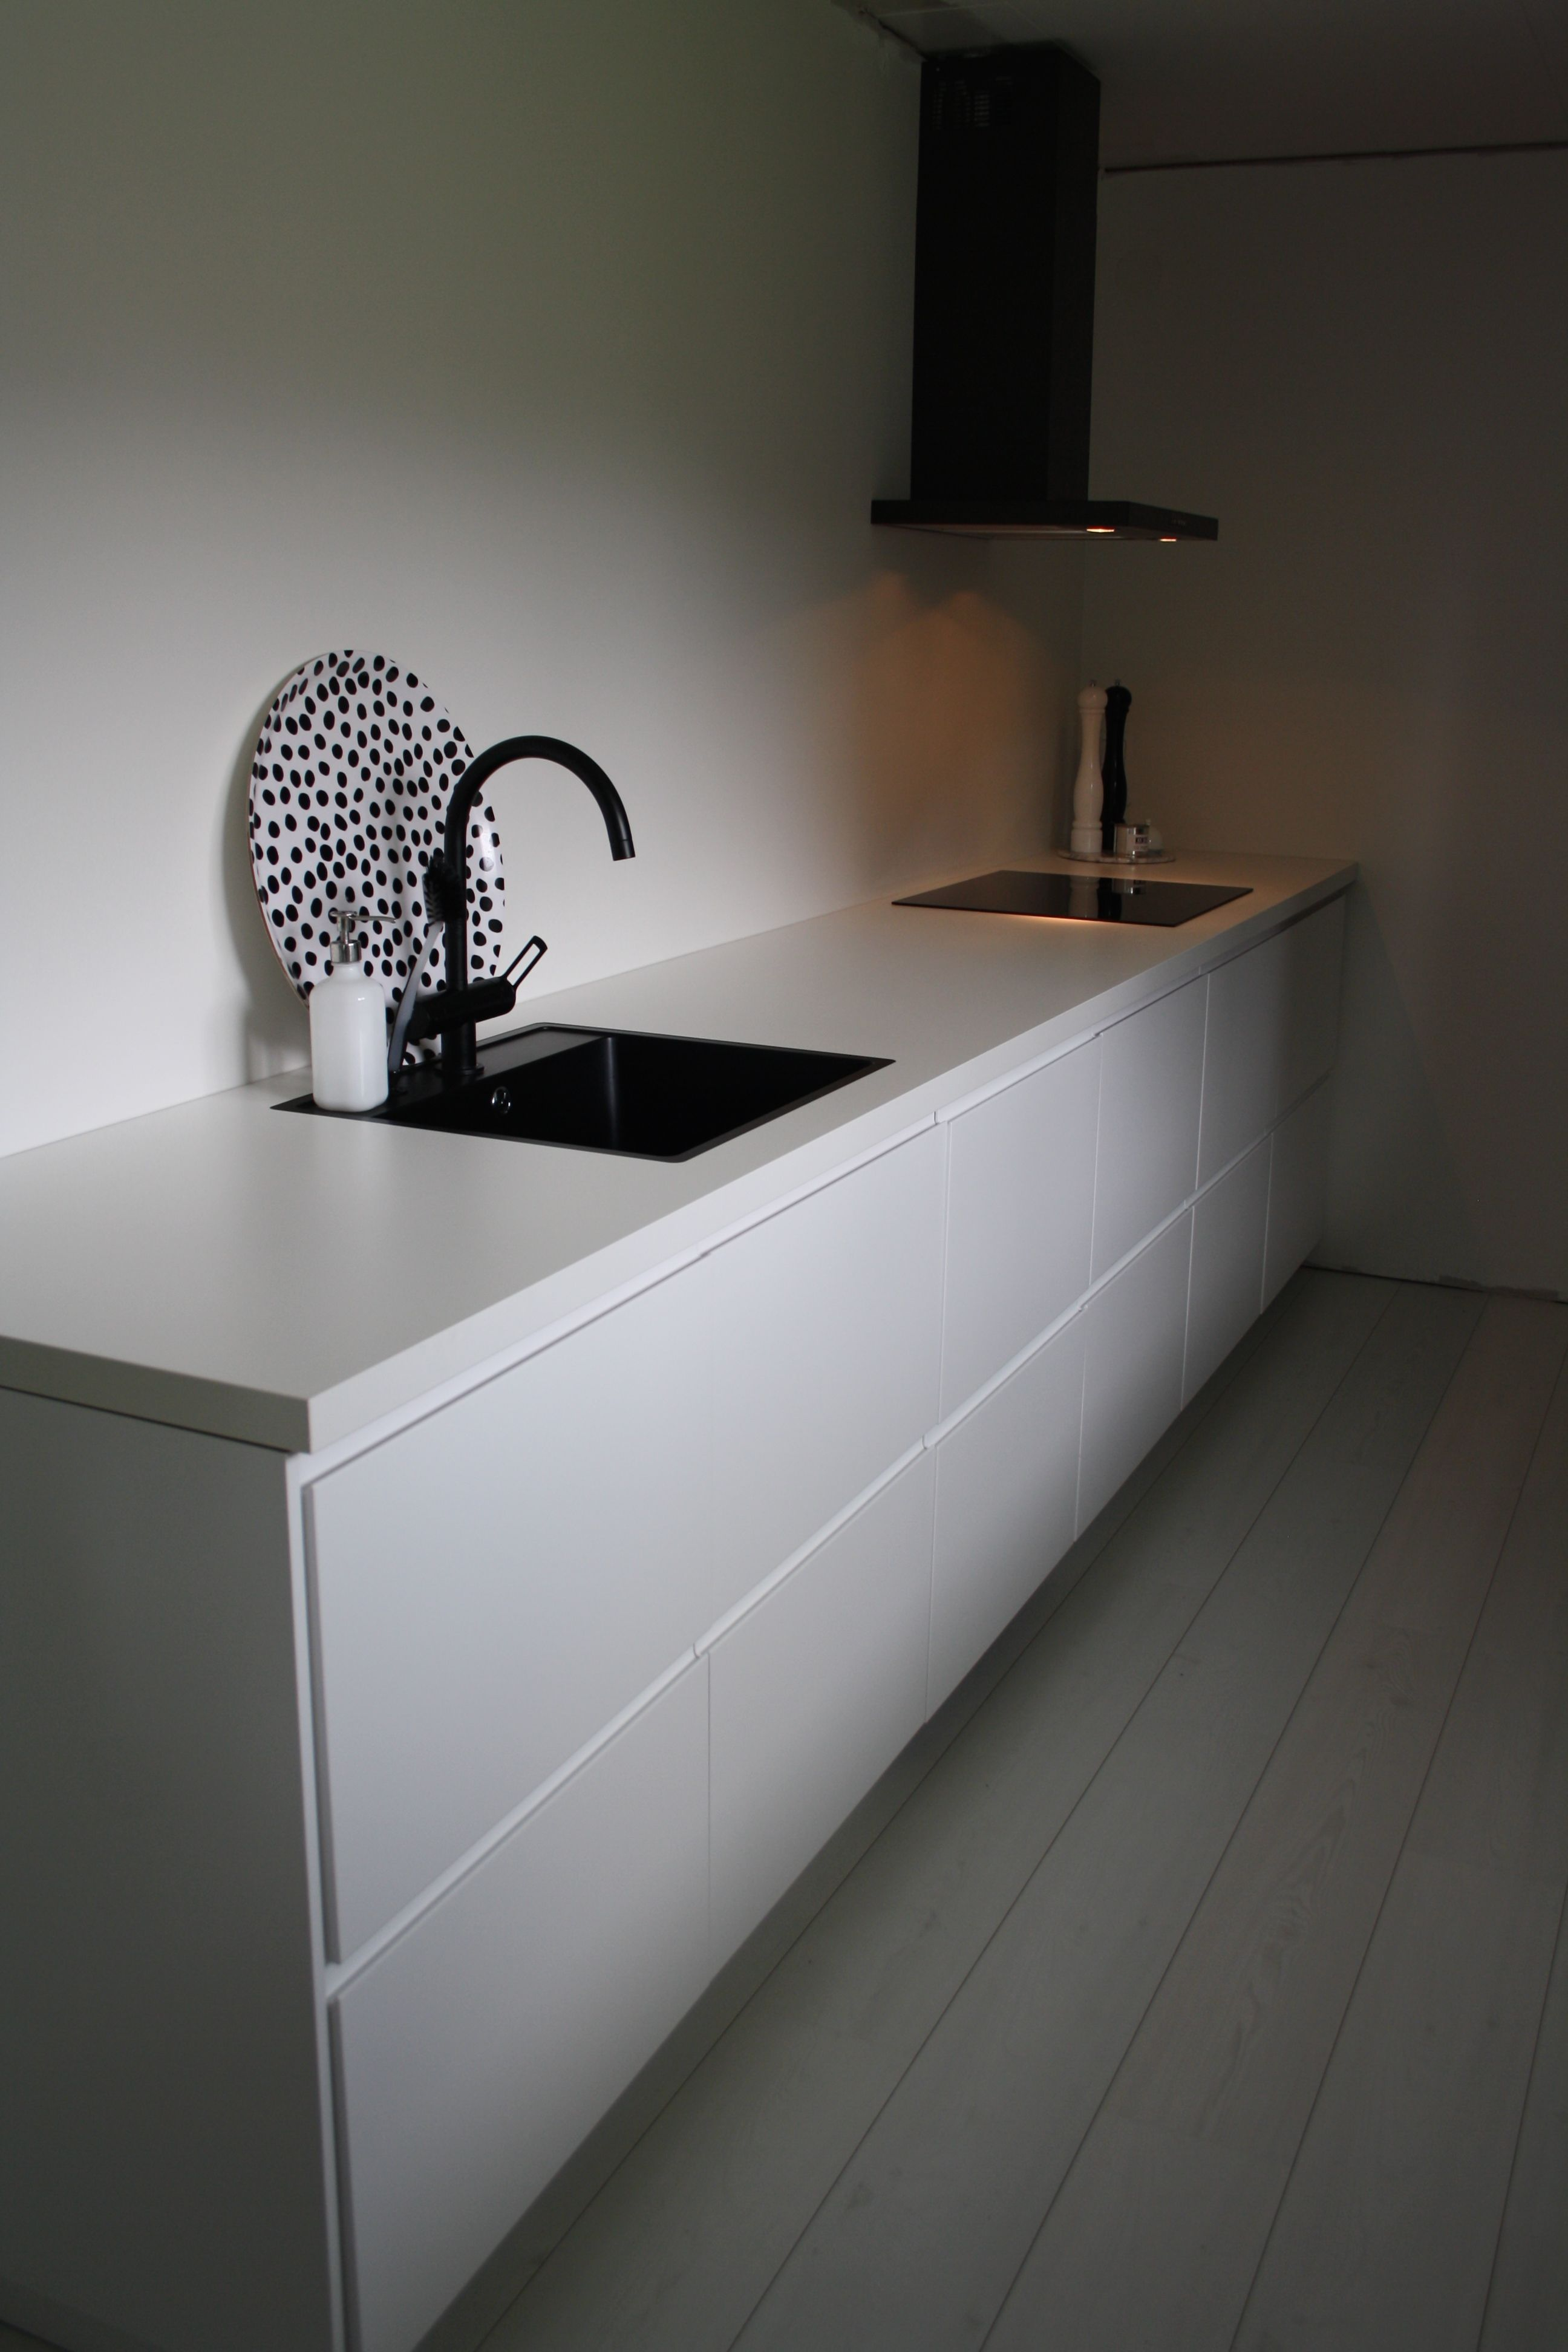 Ikea Voxtorp Ikea Voxtorp Kitchen Pinterest Ikea Hack Kitchen